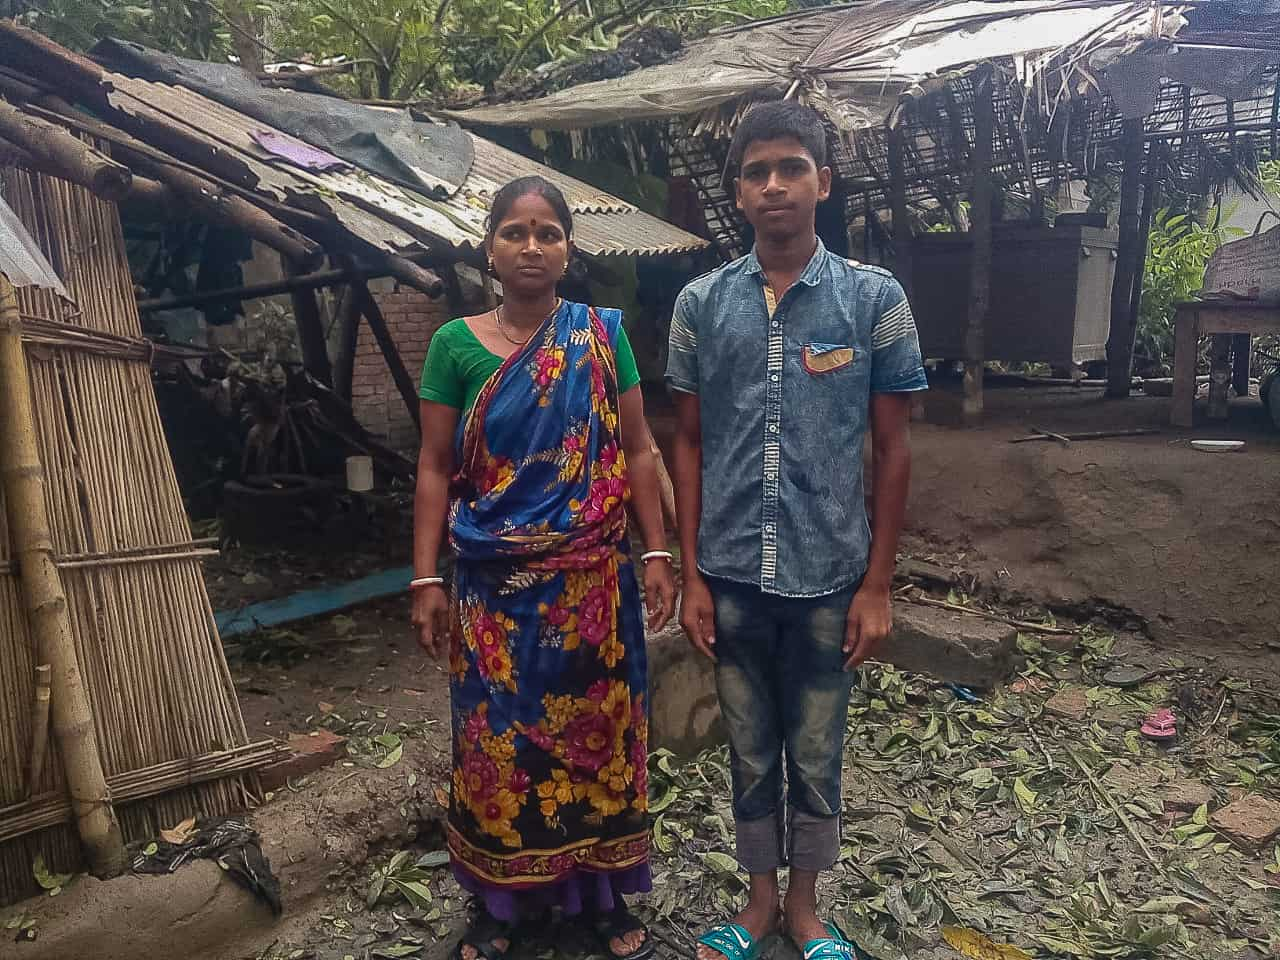 A boy and woman stand in front of a home damaged by Cyclone Amphan